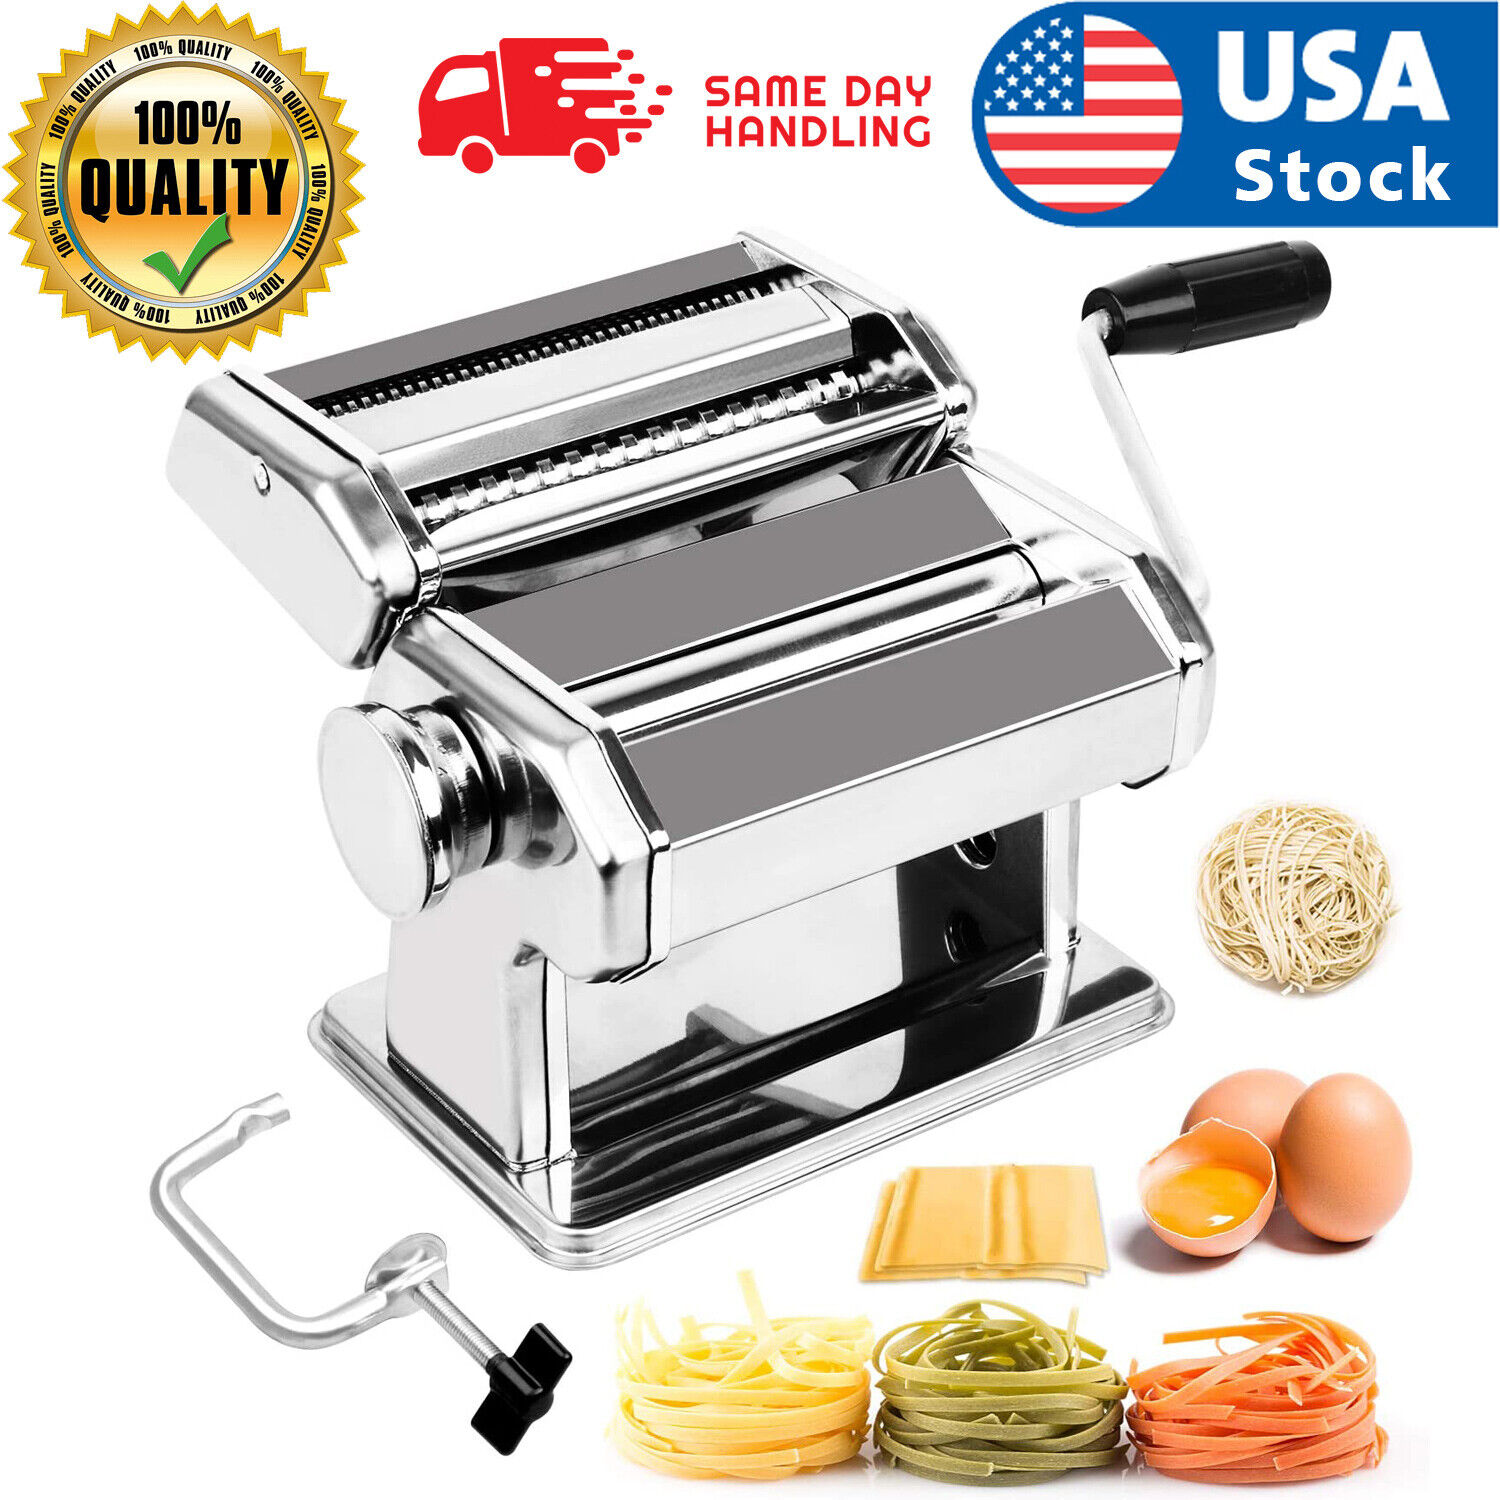 Stainless Steel Fresh Pasta Maker Roller Machine for Spaghetti Noodle Fettuccine Electric Pasta Makers